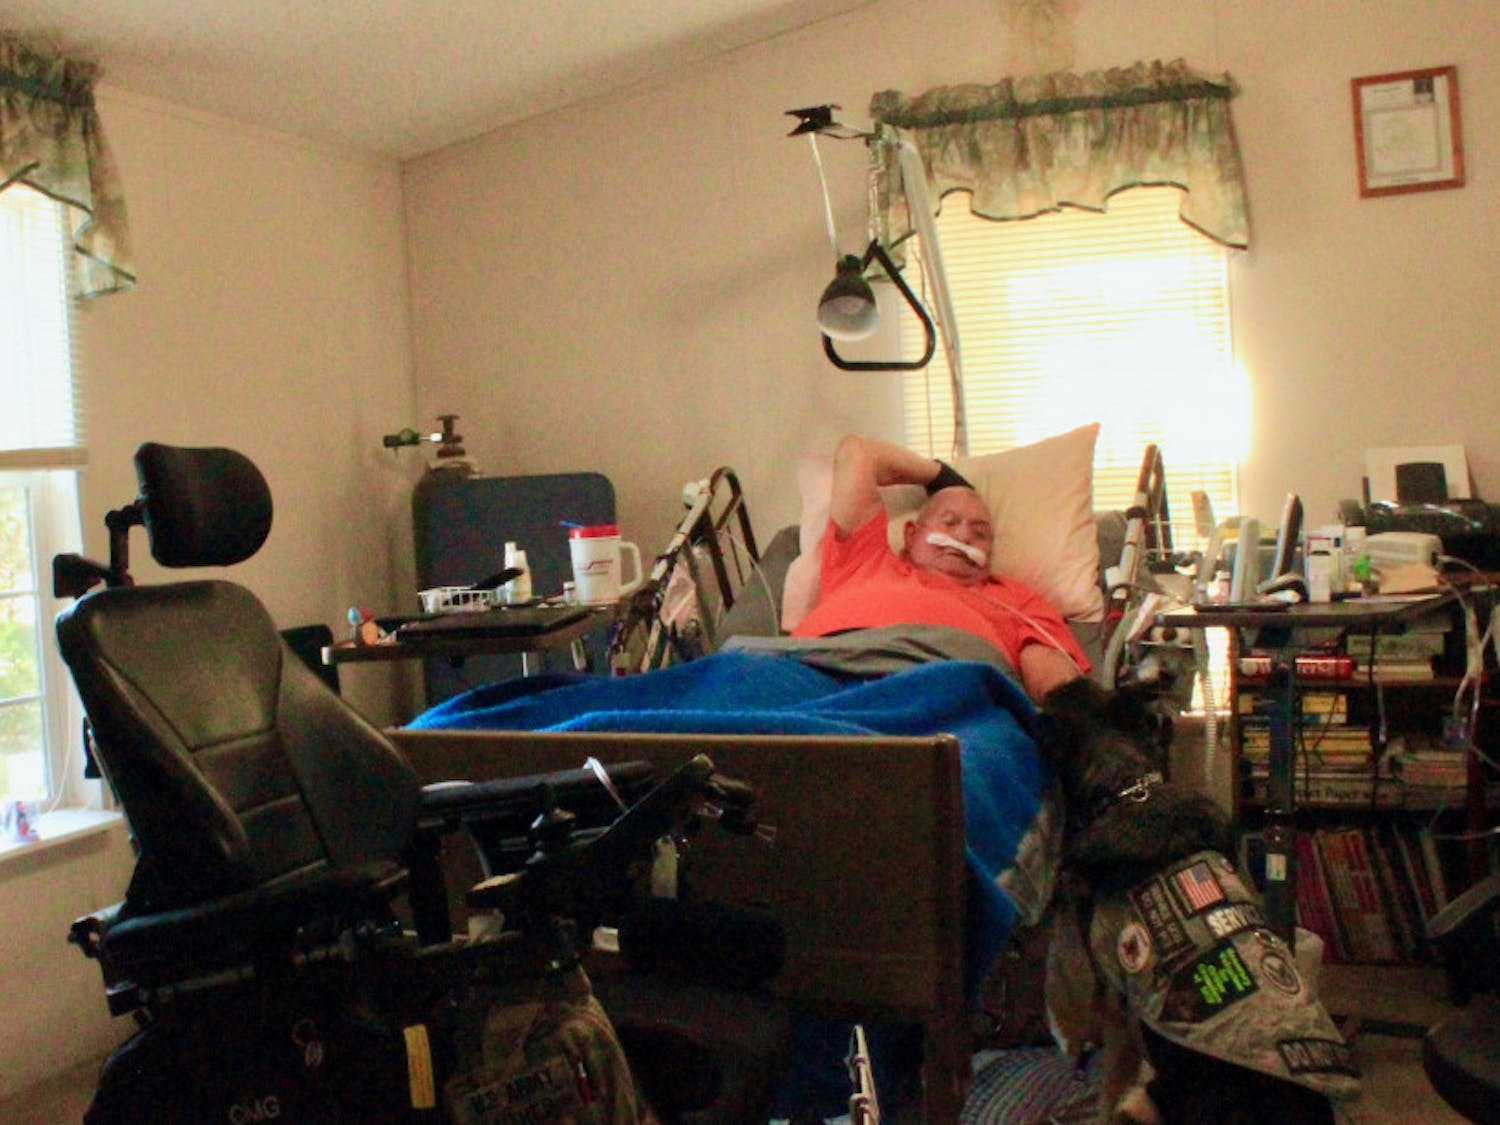 Michael Gaither, a U.S. Army veteran suffering from multiple sclerosis, lays in bed with his service dog, Honey, by his side. Both are fighting terminal illnesses and need constant medical treatments.